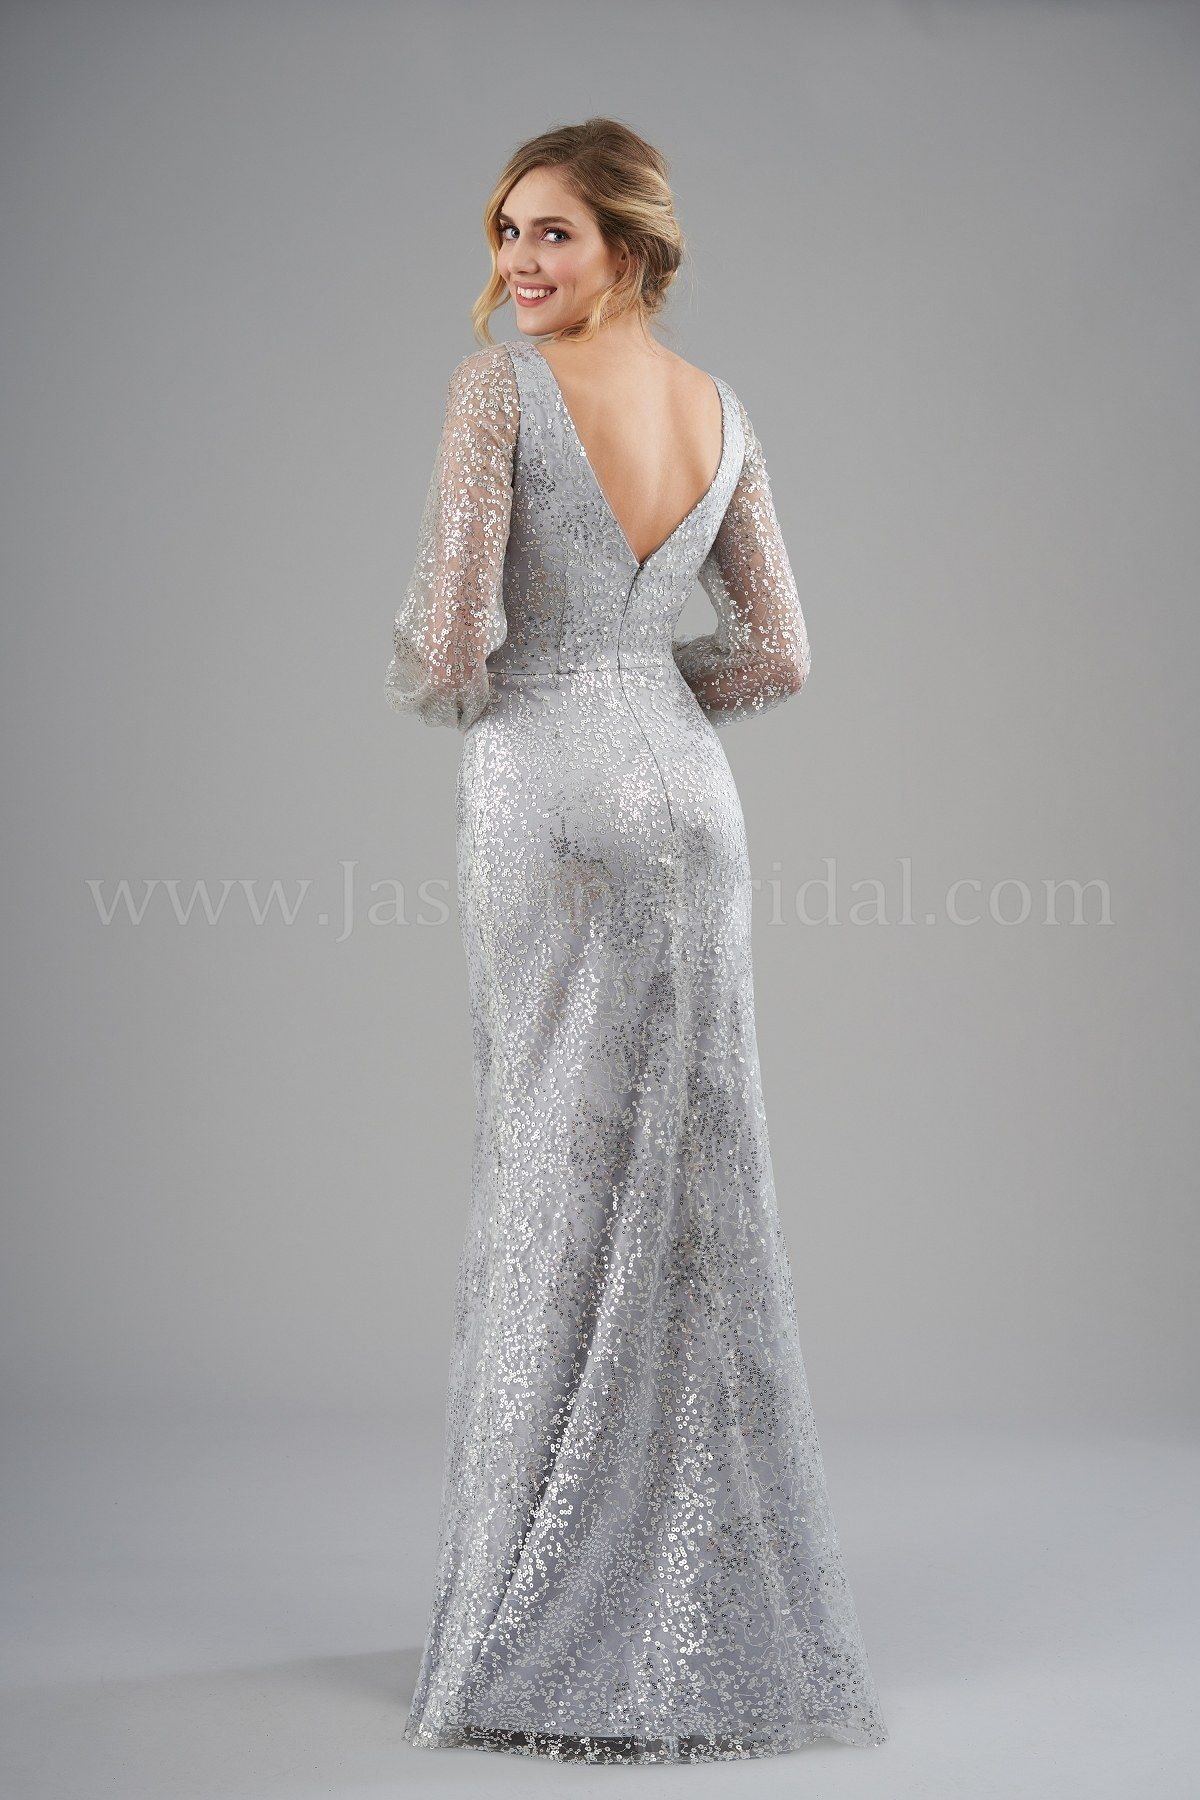 0efdb95d754 B203062 Sophisticated brushed sequin bridesmaid dress with a V-neckline and  V back. Sheer long sleeves and a flattering fit and flare silhouette to  complete ...